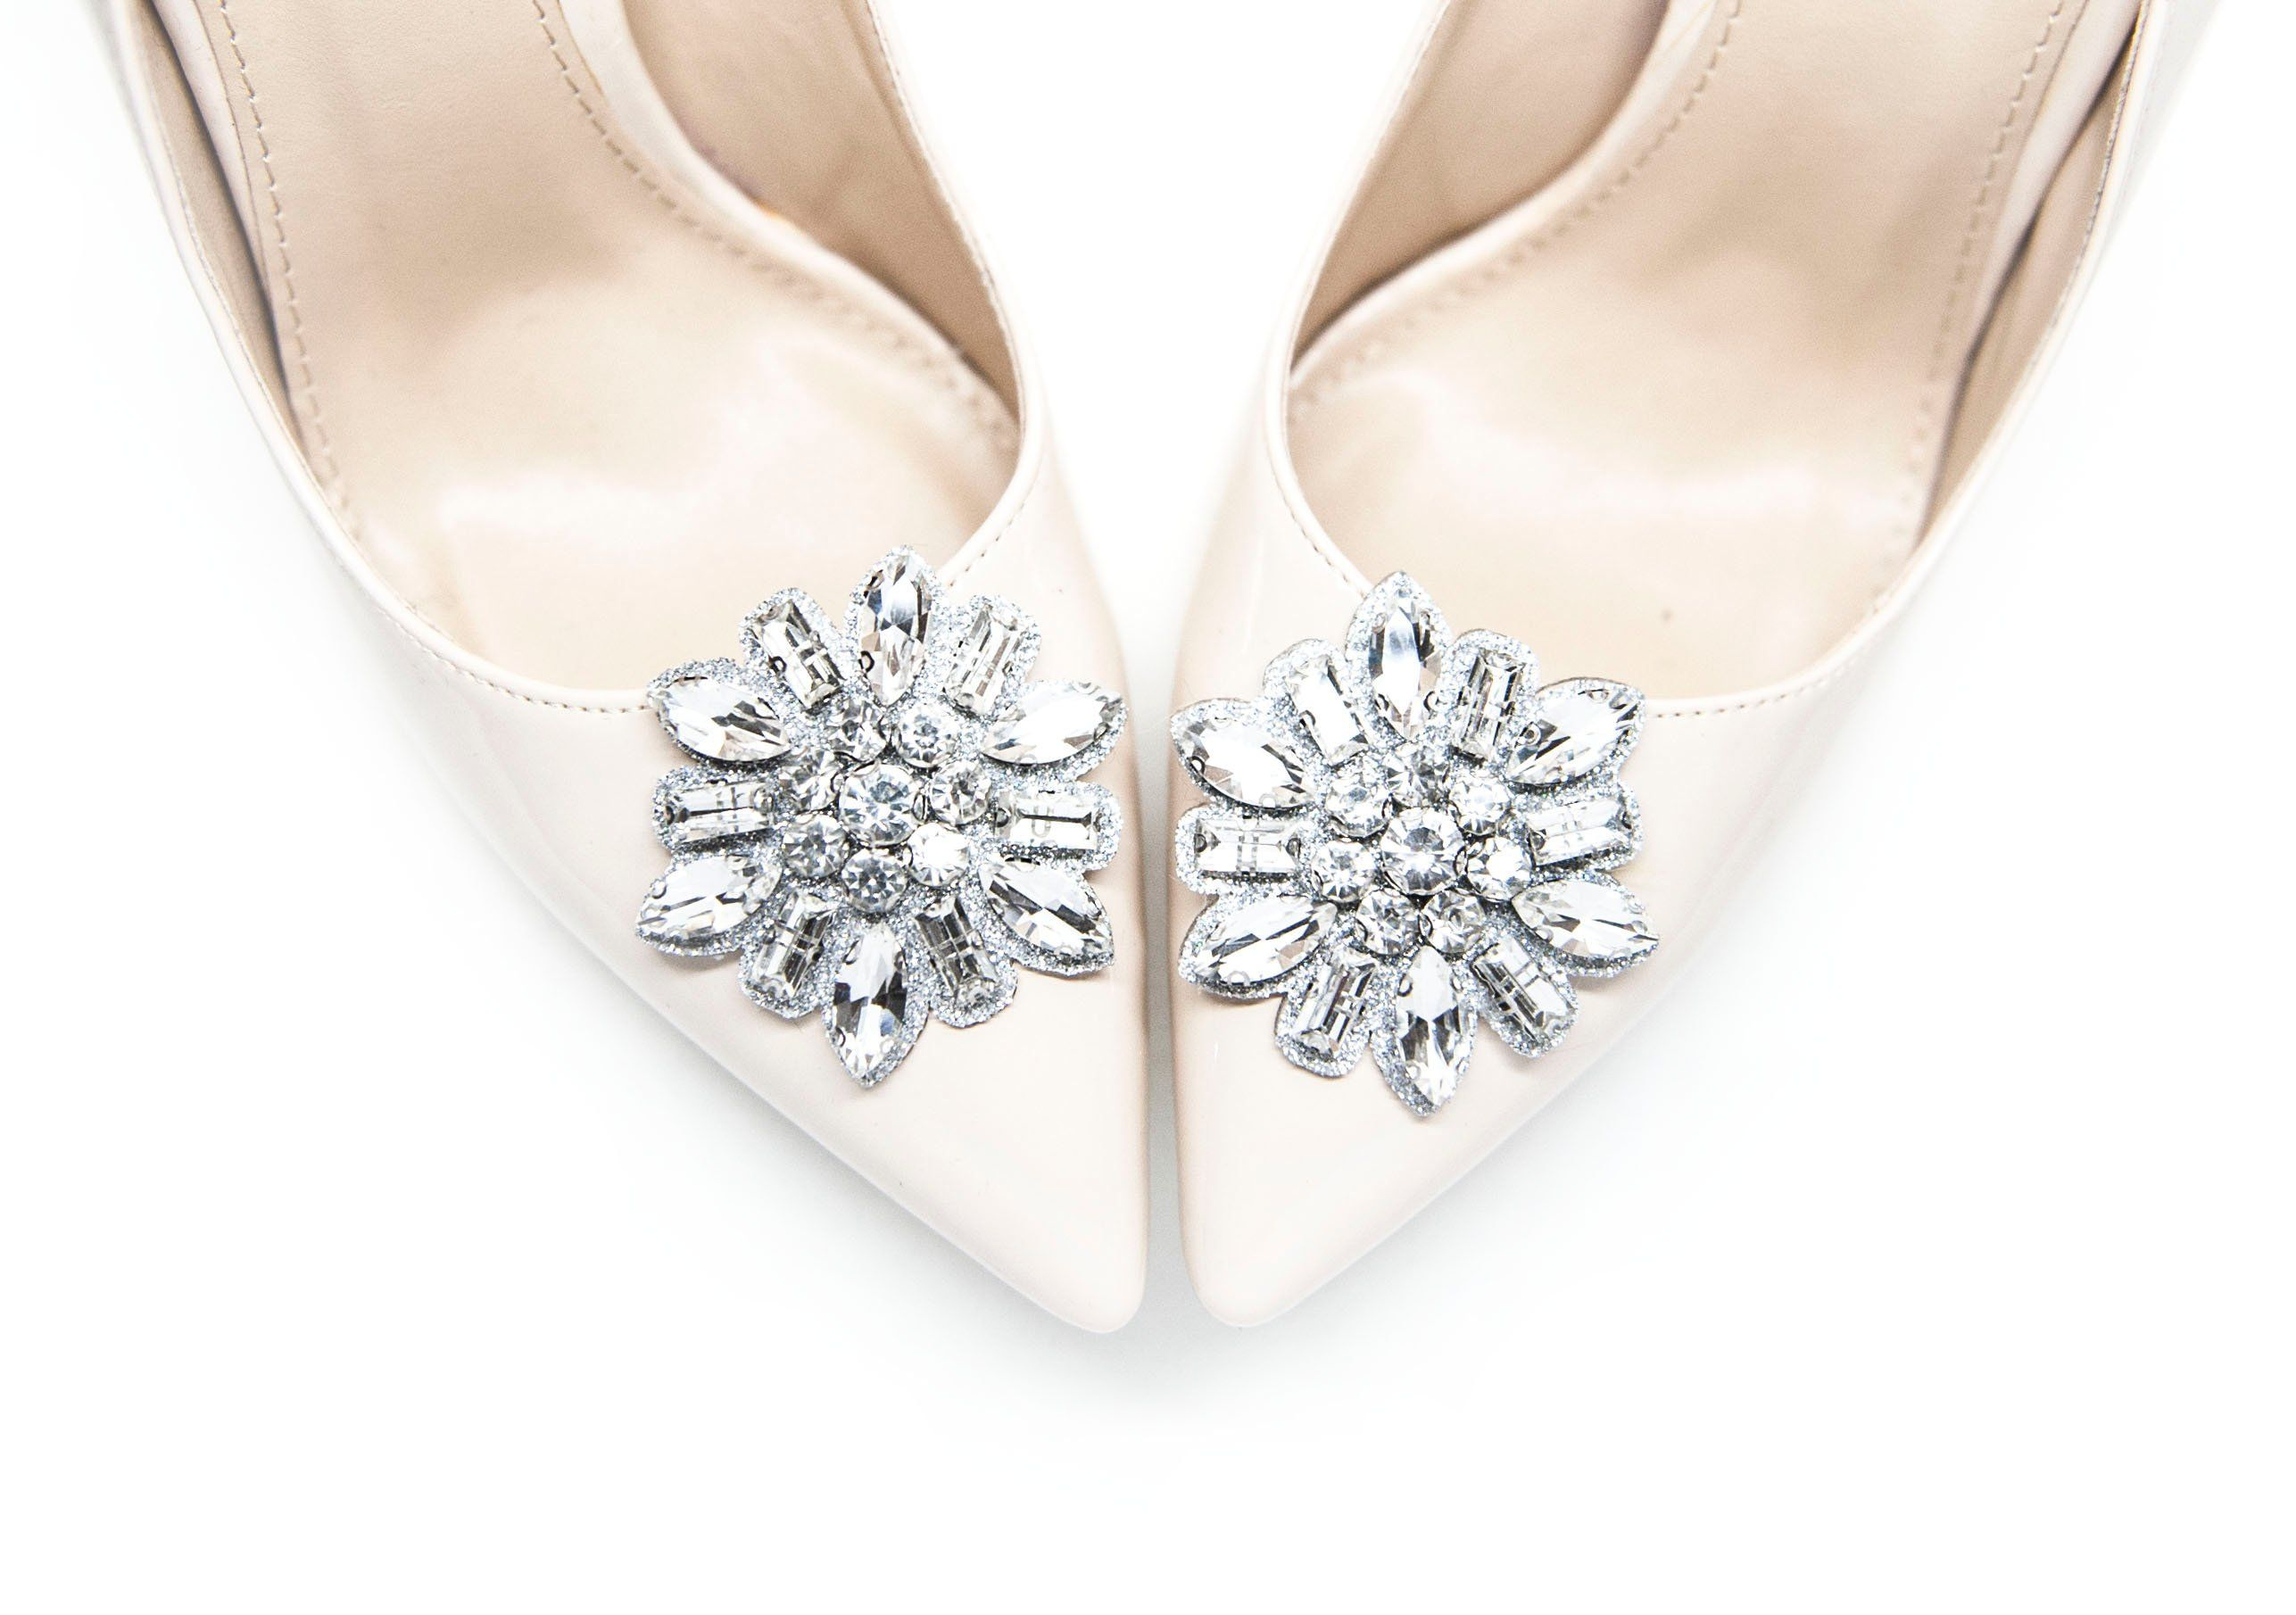 8bdd20c8e Decorations of silver rhinestones shoe clips. The decorations look really  special. Perfect addition to bridal styling or a big …